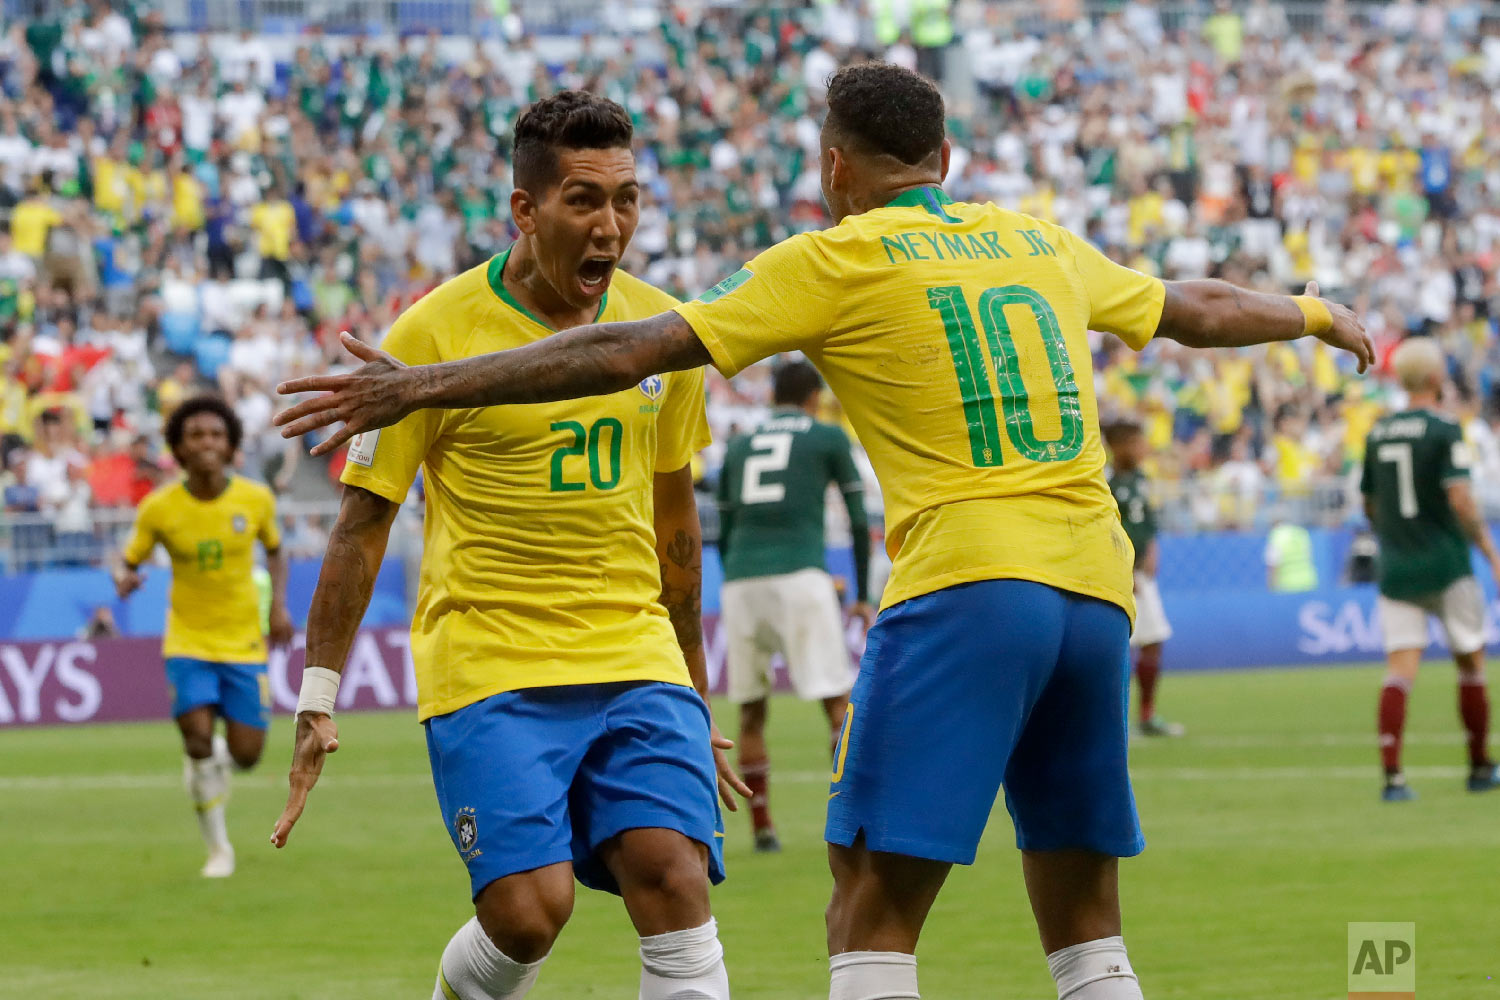 Brazil's Roberto Firmino, left, celebrates with Brazil's Neymar, right, after scoring his side's second goal during the round of 16 match between Brazil and Mexico at the 2018 soccer World Cup in the Samara Arena, in Samara, Russia, Monday, July 2, 2018. (AP Photo/Andre Penner)